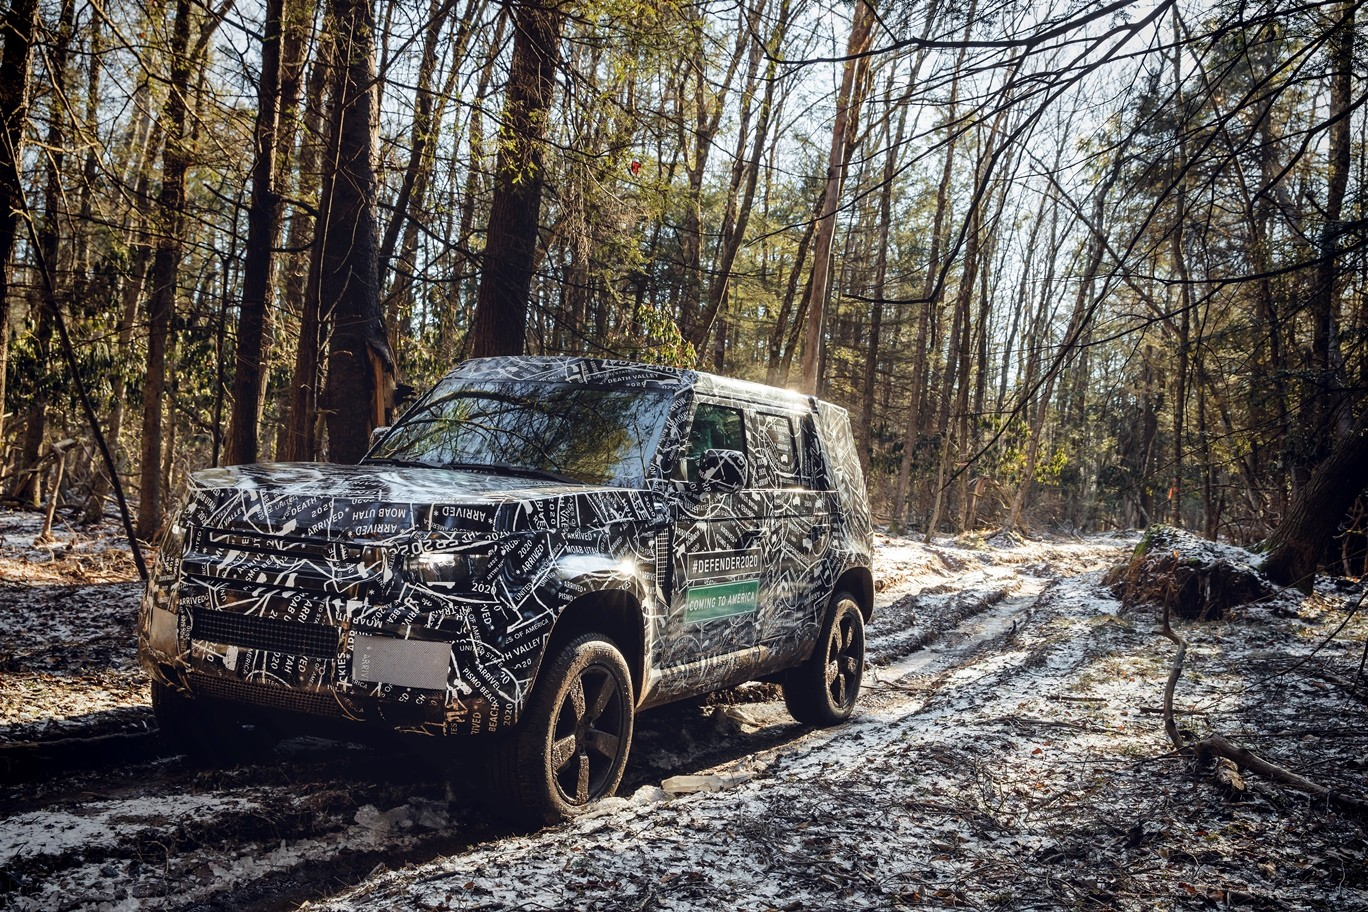 New Discovery Sport 2019 >> Here Are Official Spy Photos Of the U.S.-bound 2020 Land Rover Defender - autoevolution